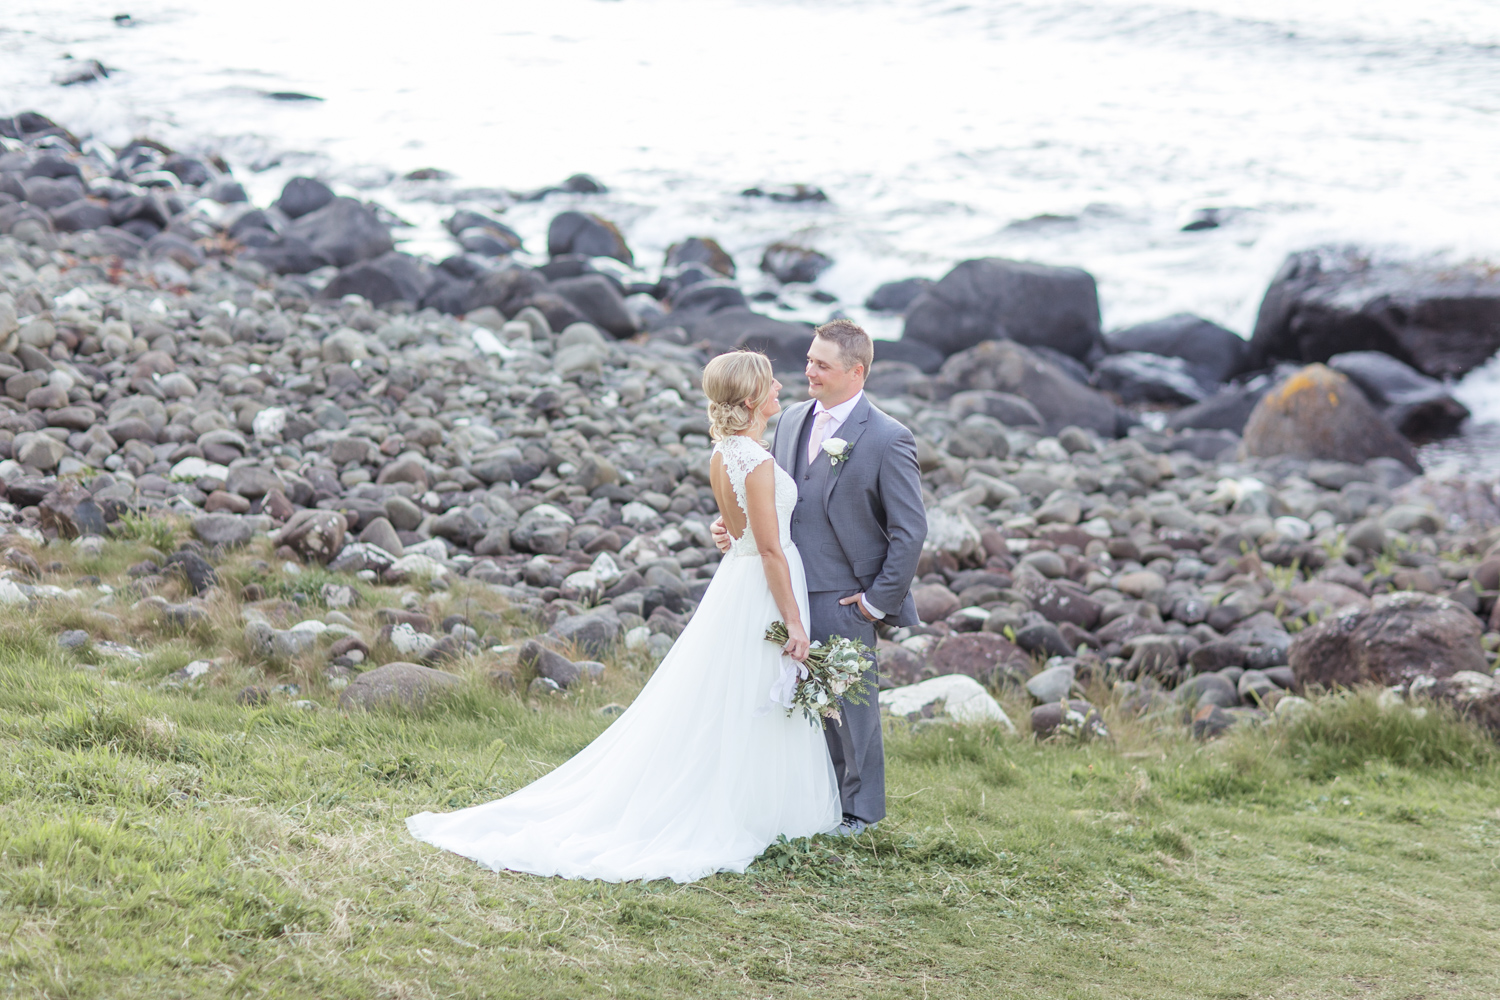 Bride and groom with the view of the atlantic ocean, rocky background in northern ireland after their elopement ceremony